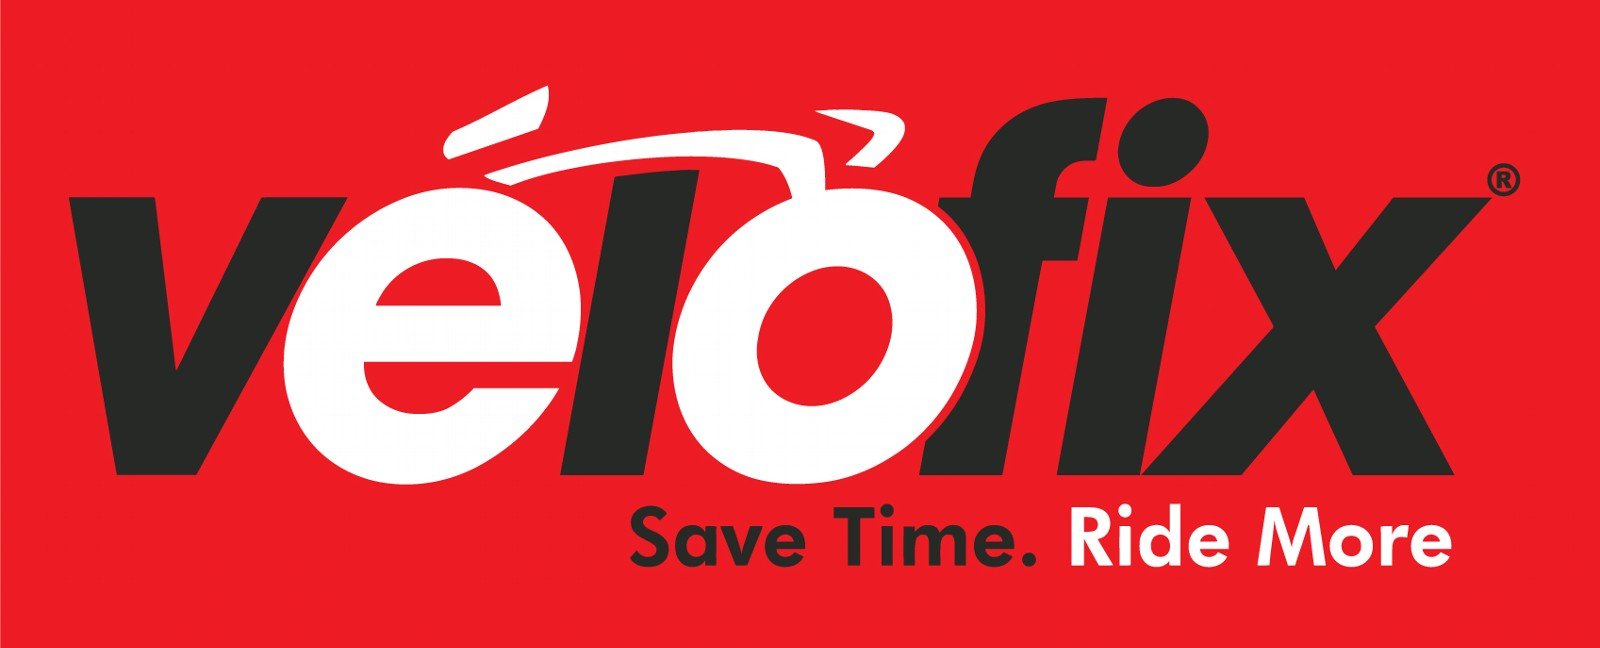 Velofix, Save Time, Ride More